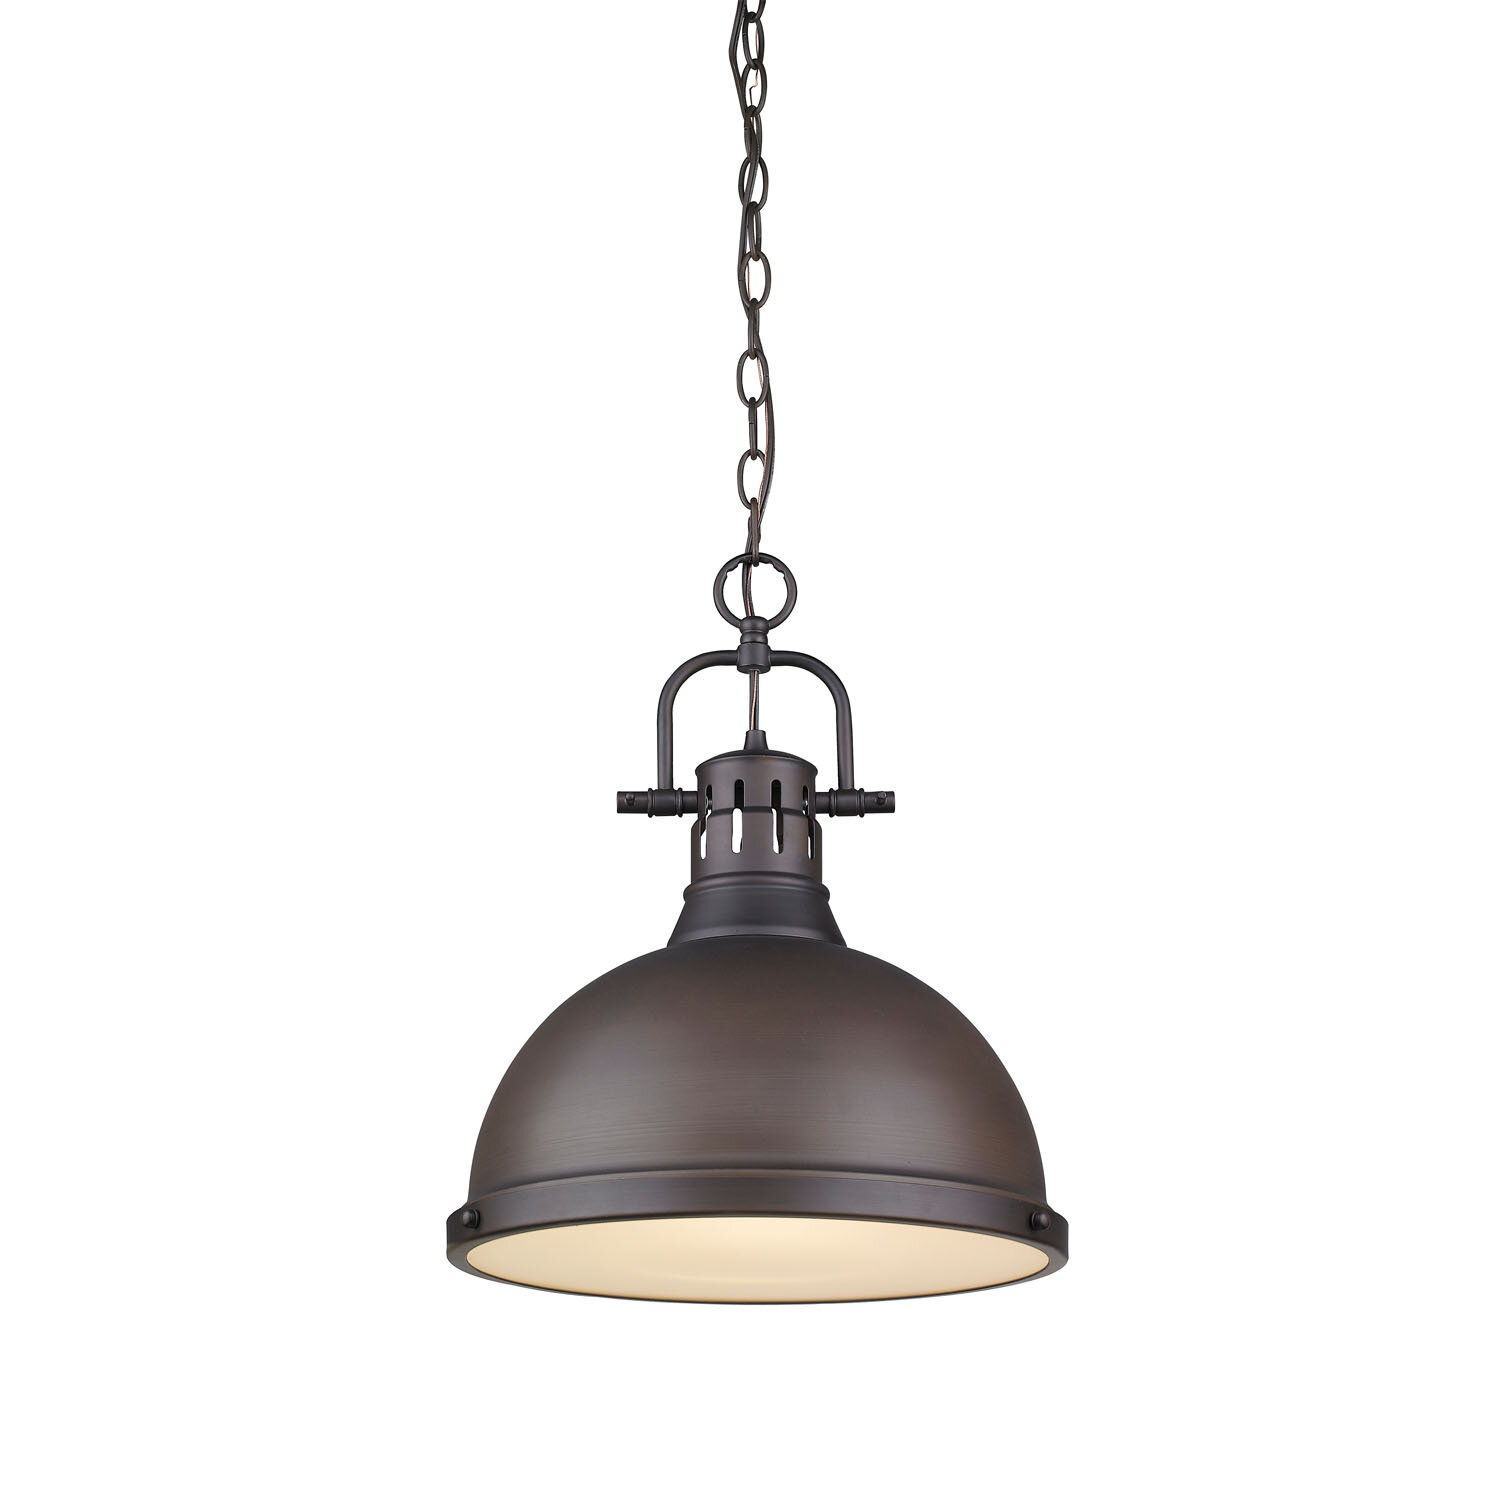 Bodalla 1 Light Dome Pendant Regarding Proctor 1 Light Bowl Pendants (View 24 of 30)